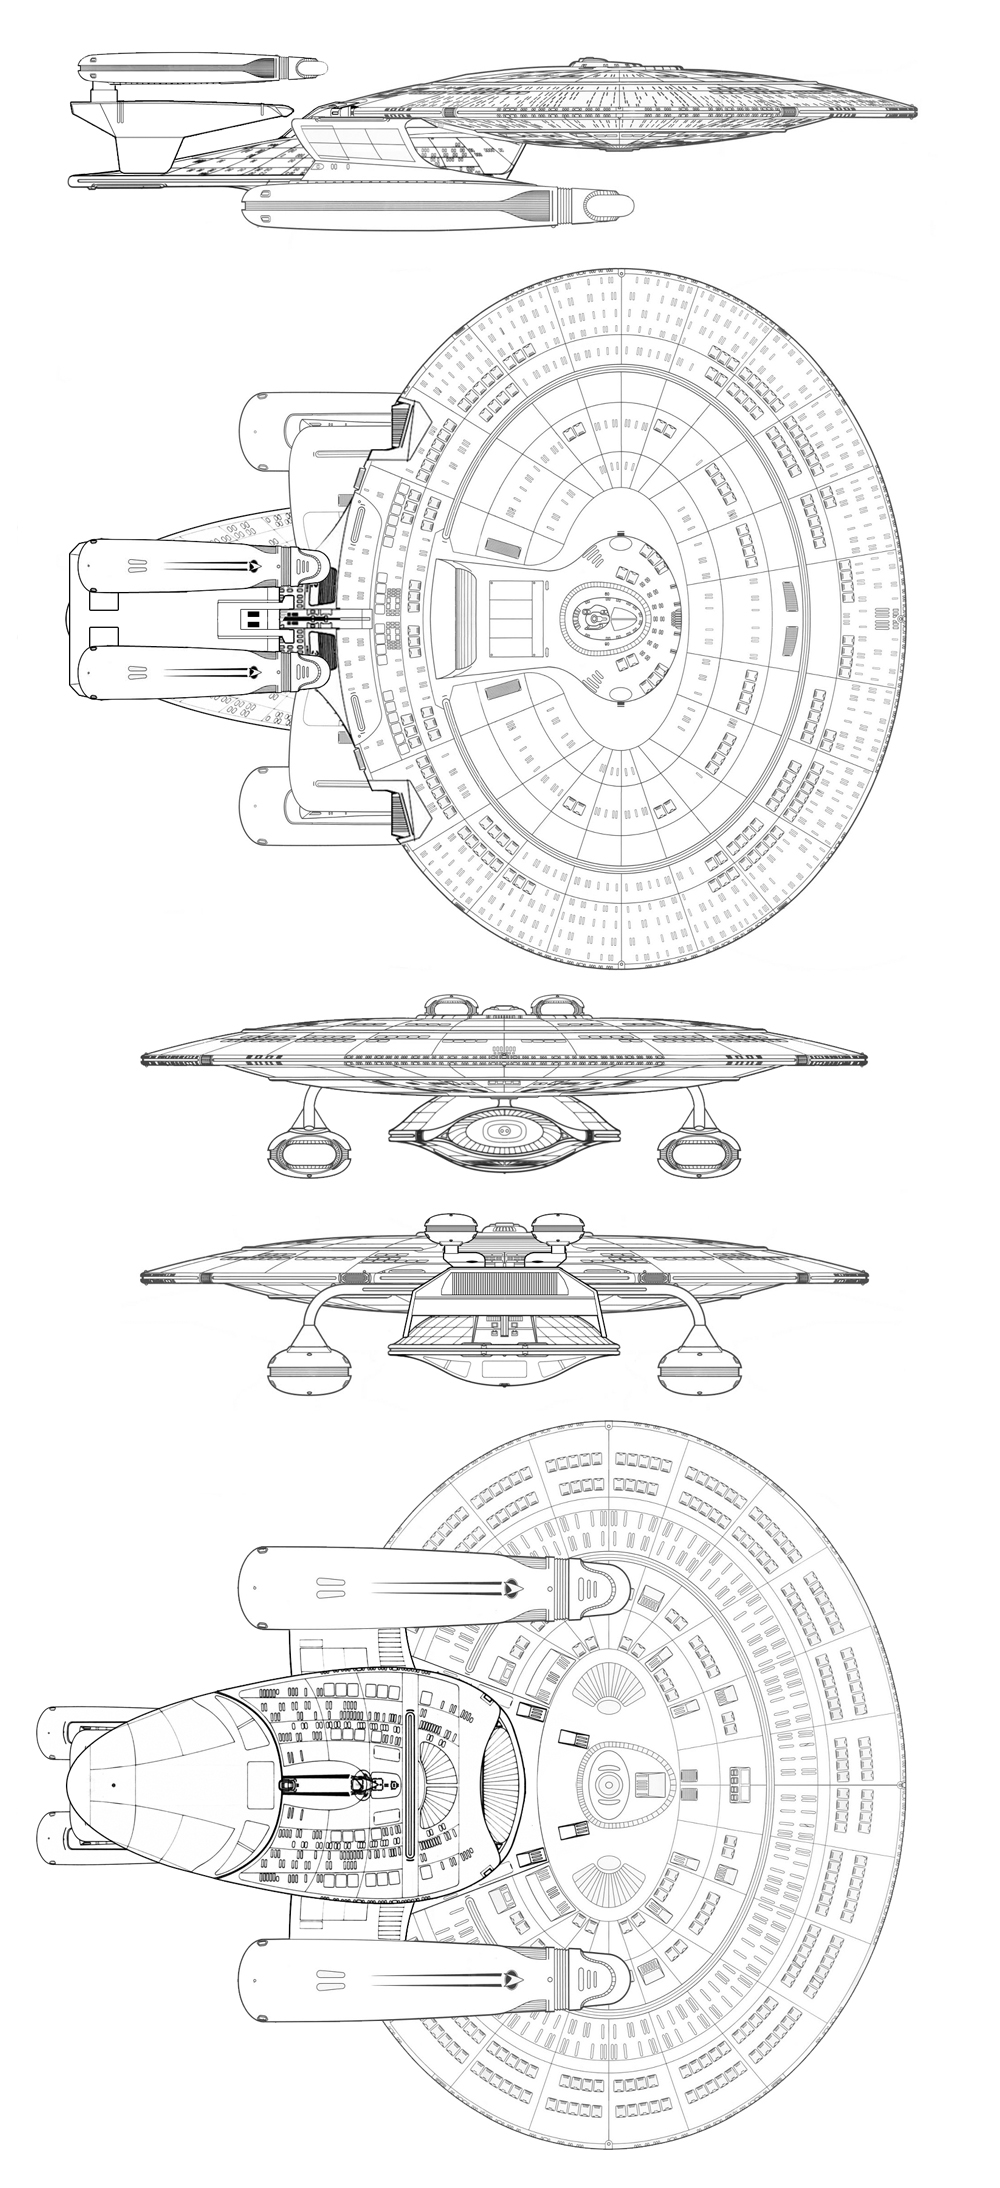 hight resolution of uss melbourne from the battle at wolf 359 in tng s best of both worlds pt ii